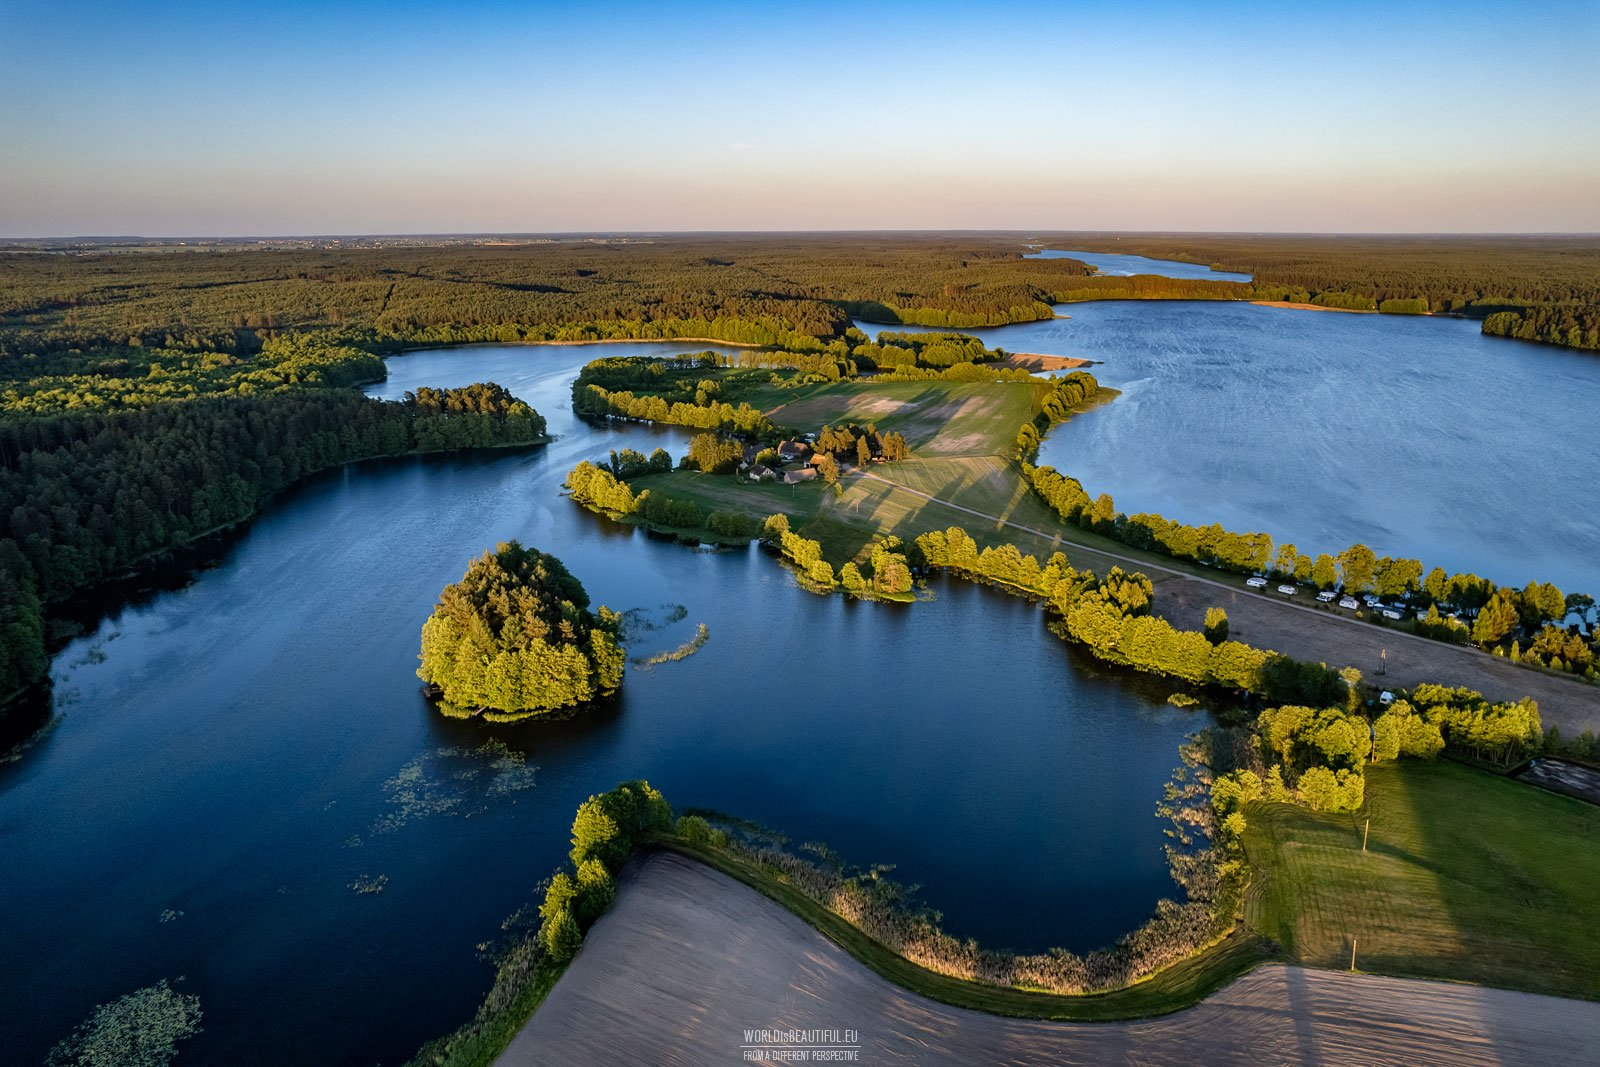 Lakes in forest - beautiful views in Bory Tucholskie